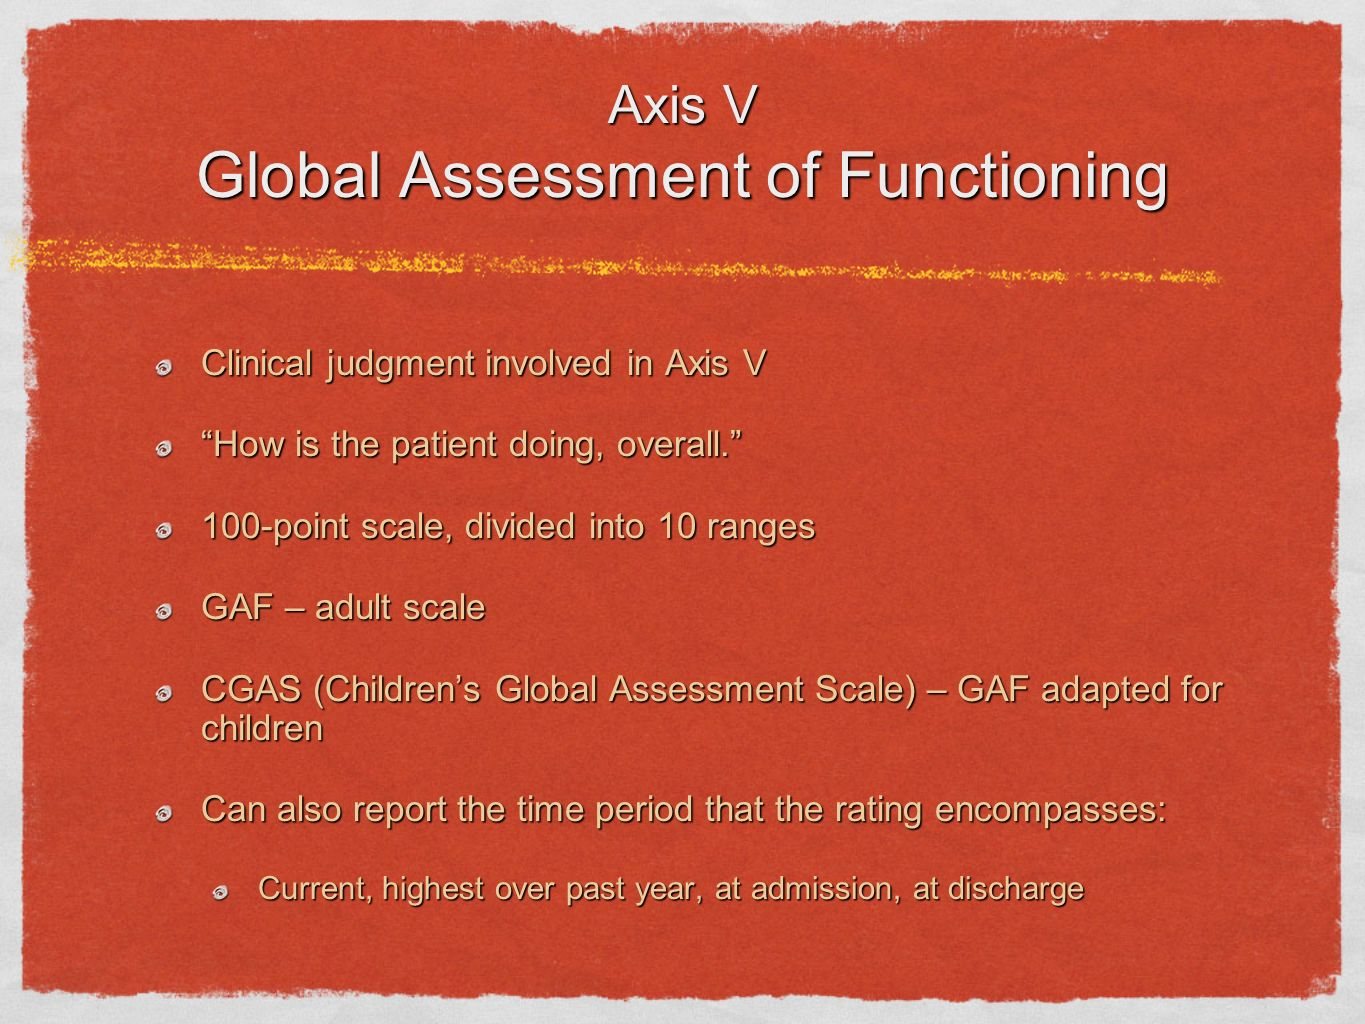 Axis V Global Assessment of Functioning Clinical judgment involved in Axis V How is the patient doing, overall. 100-point scale, divided into 10 range